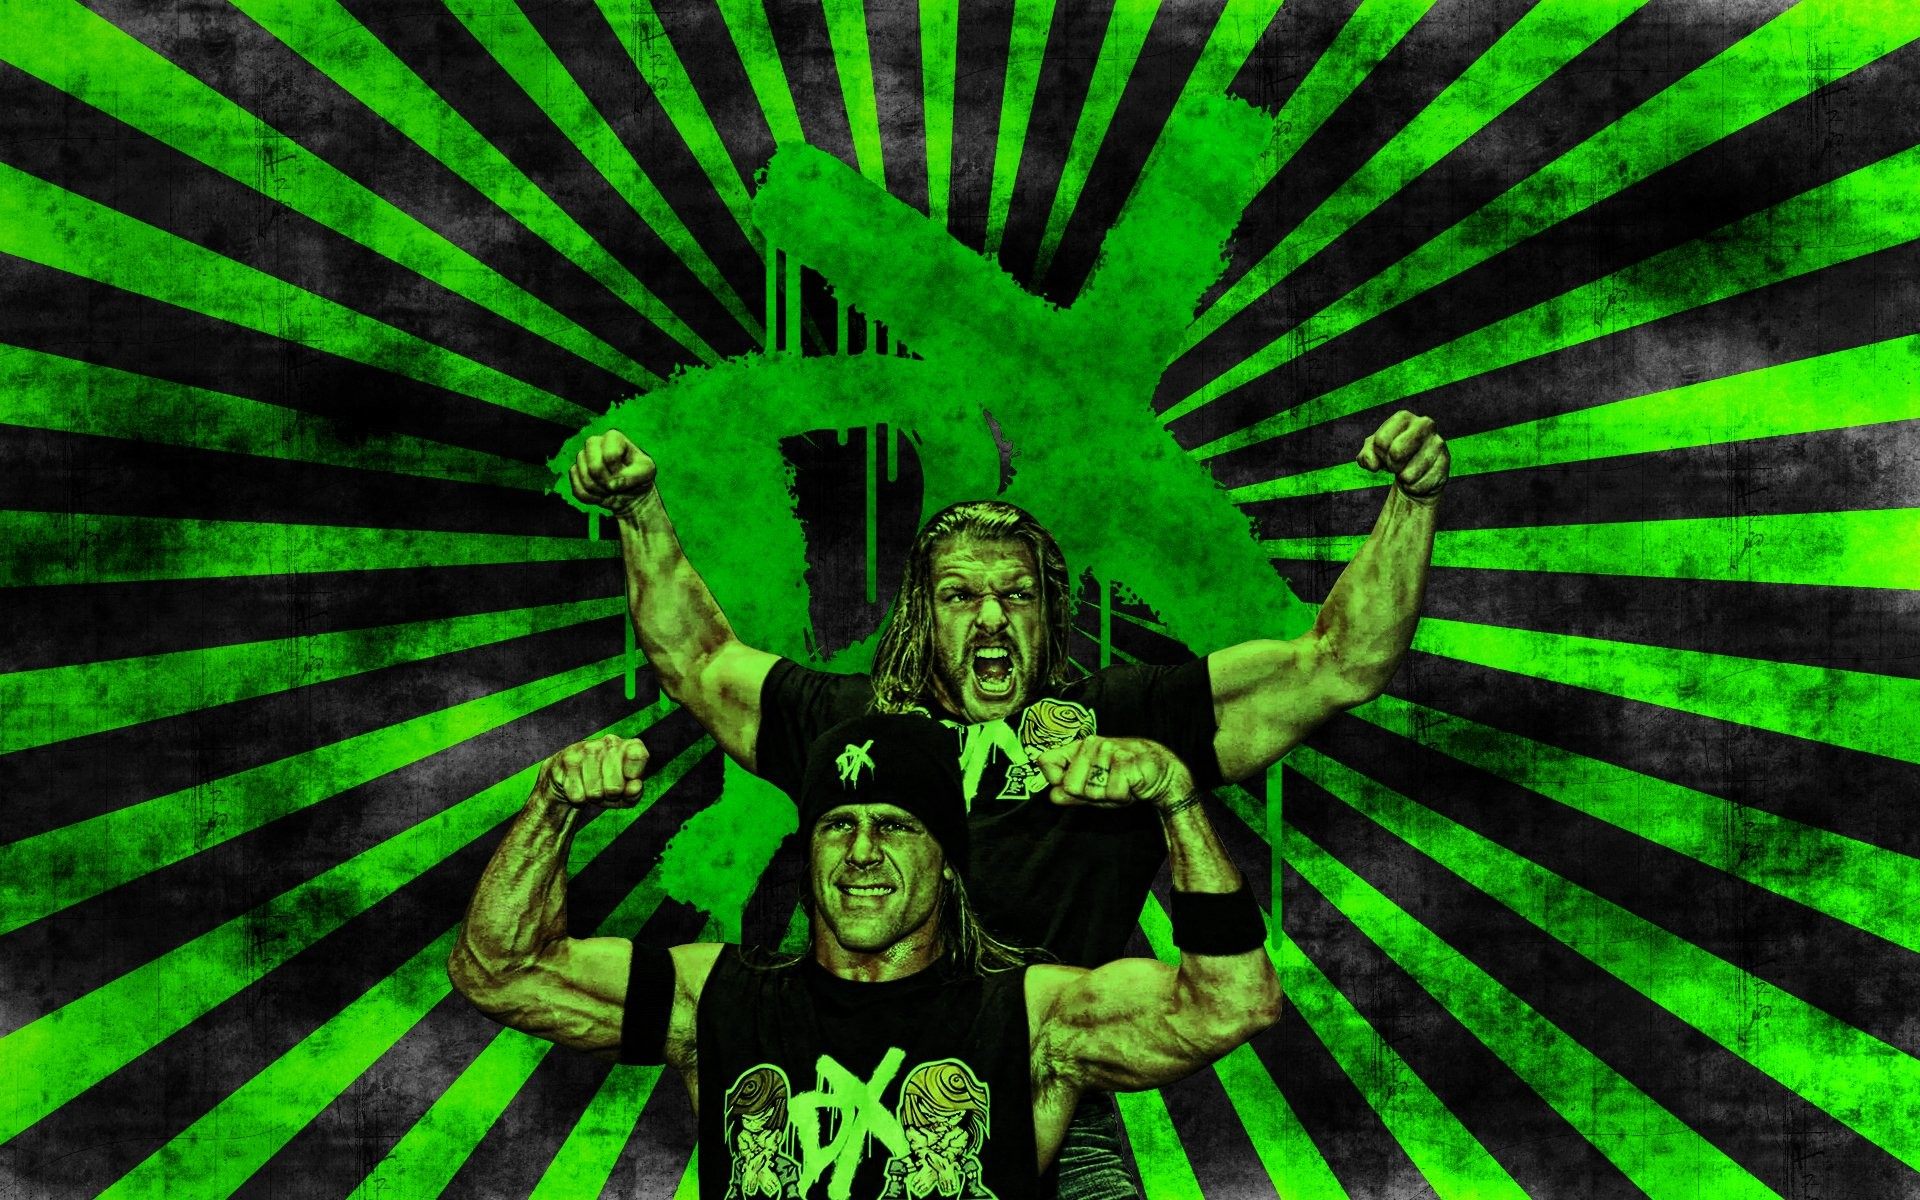 Wwe dx wallpaper wallpapertag - Dx images download ...